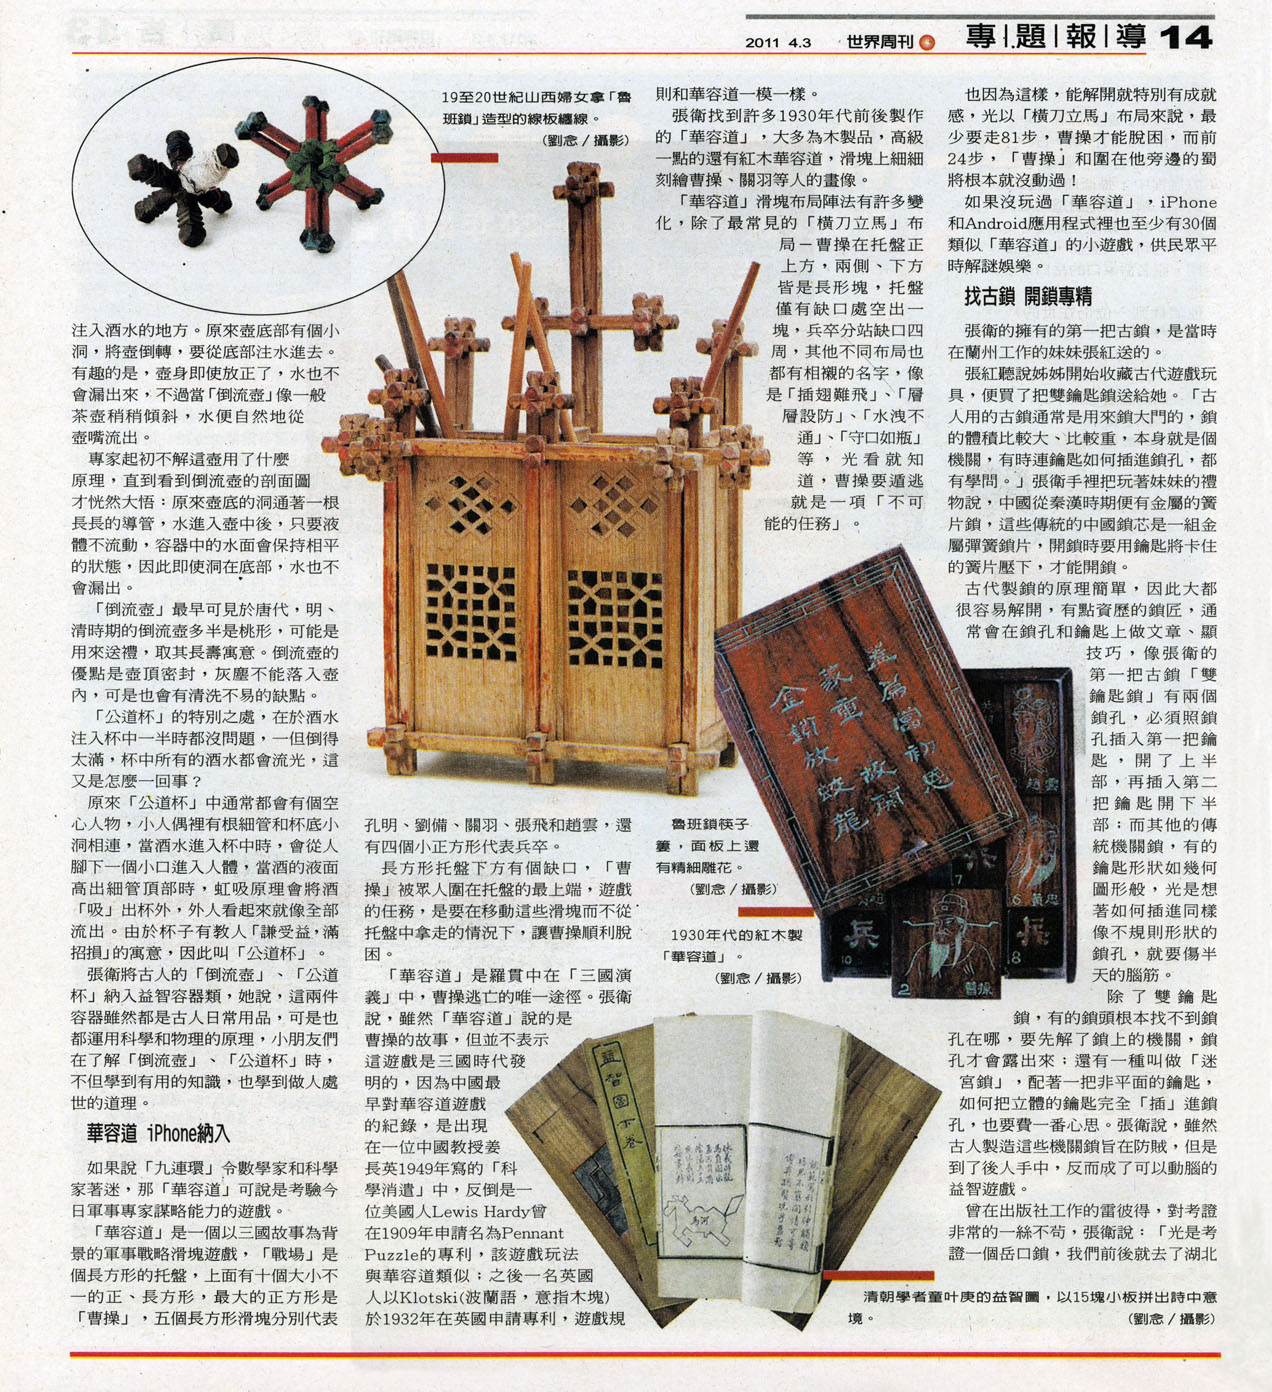 World Journal puzzles cover story